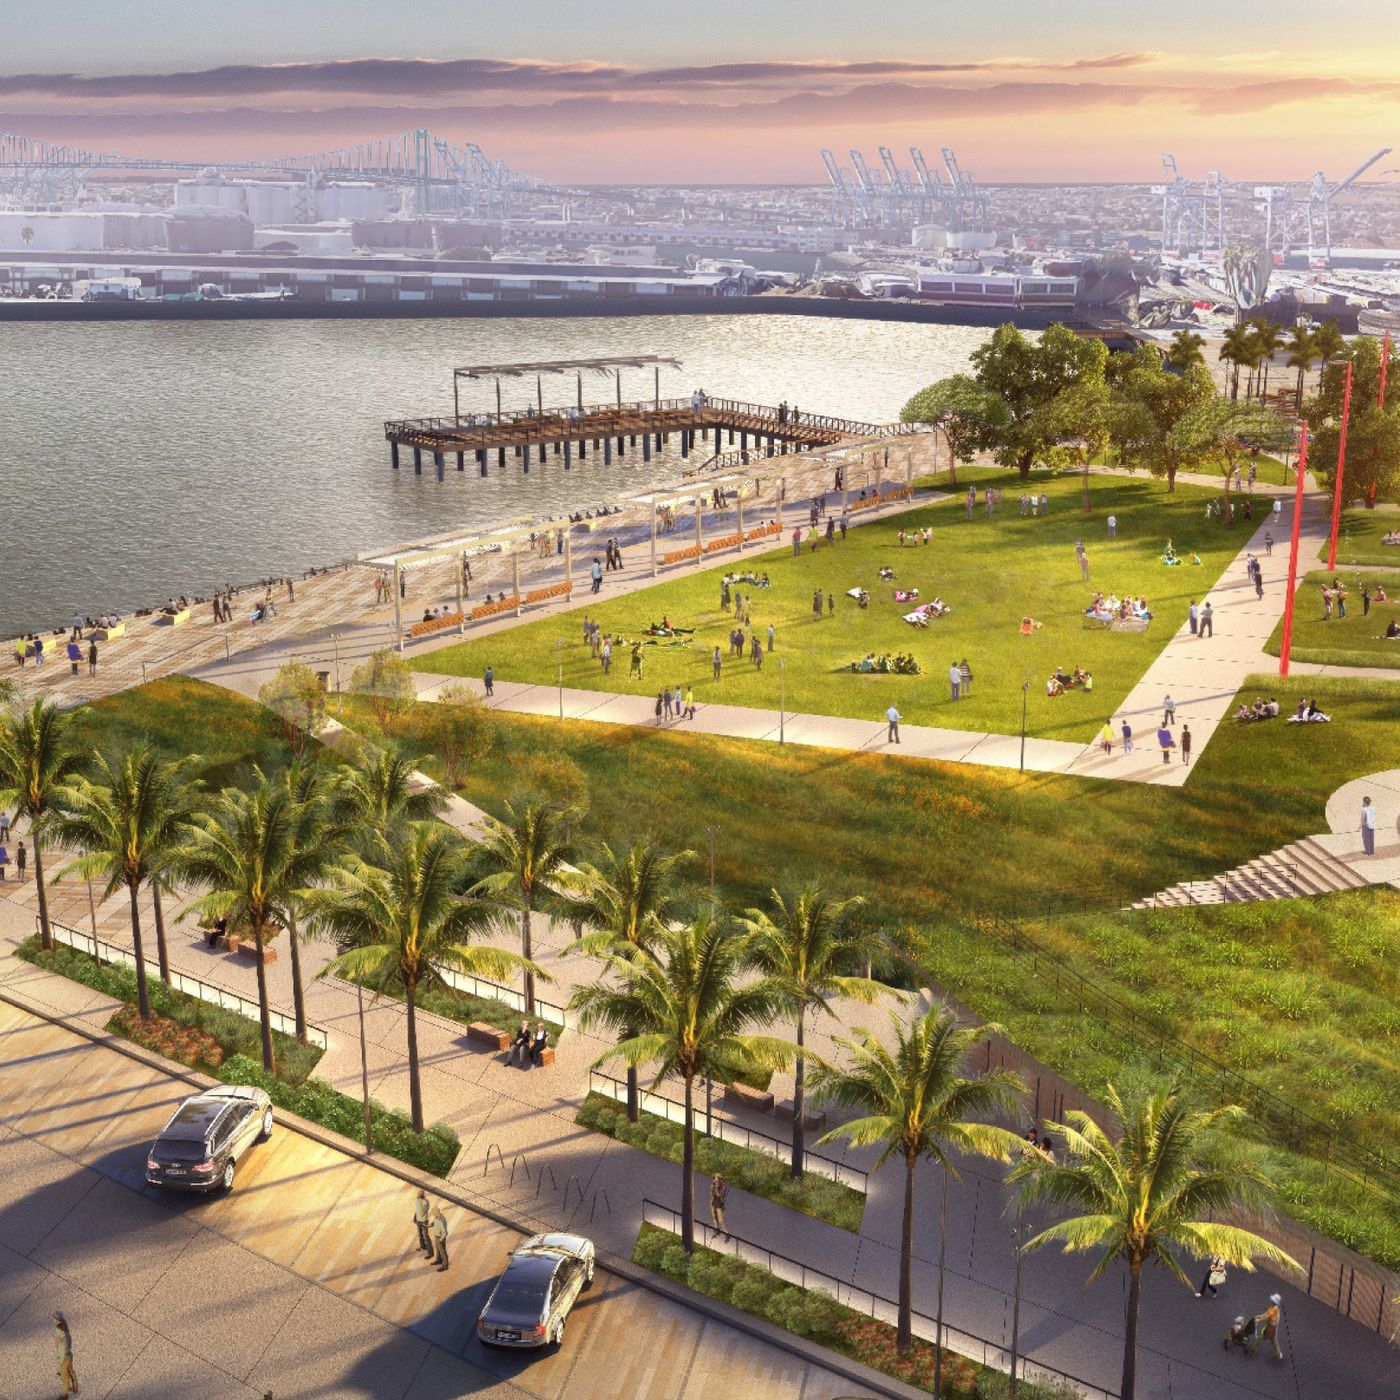 wilmington s waterfront will be transformed into sprawling park